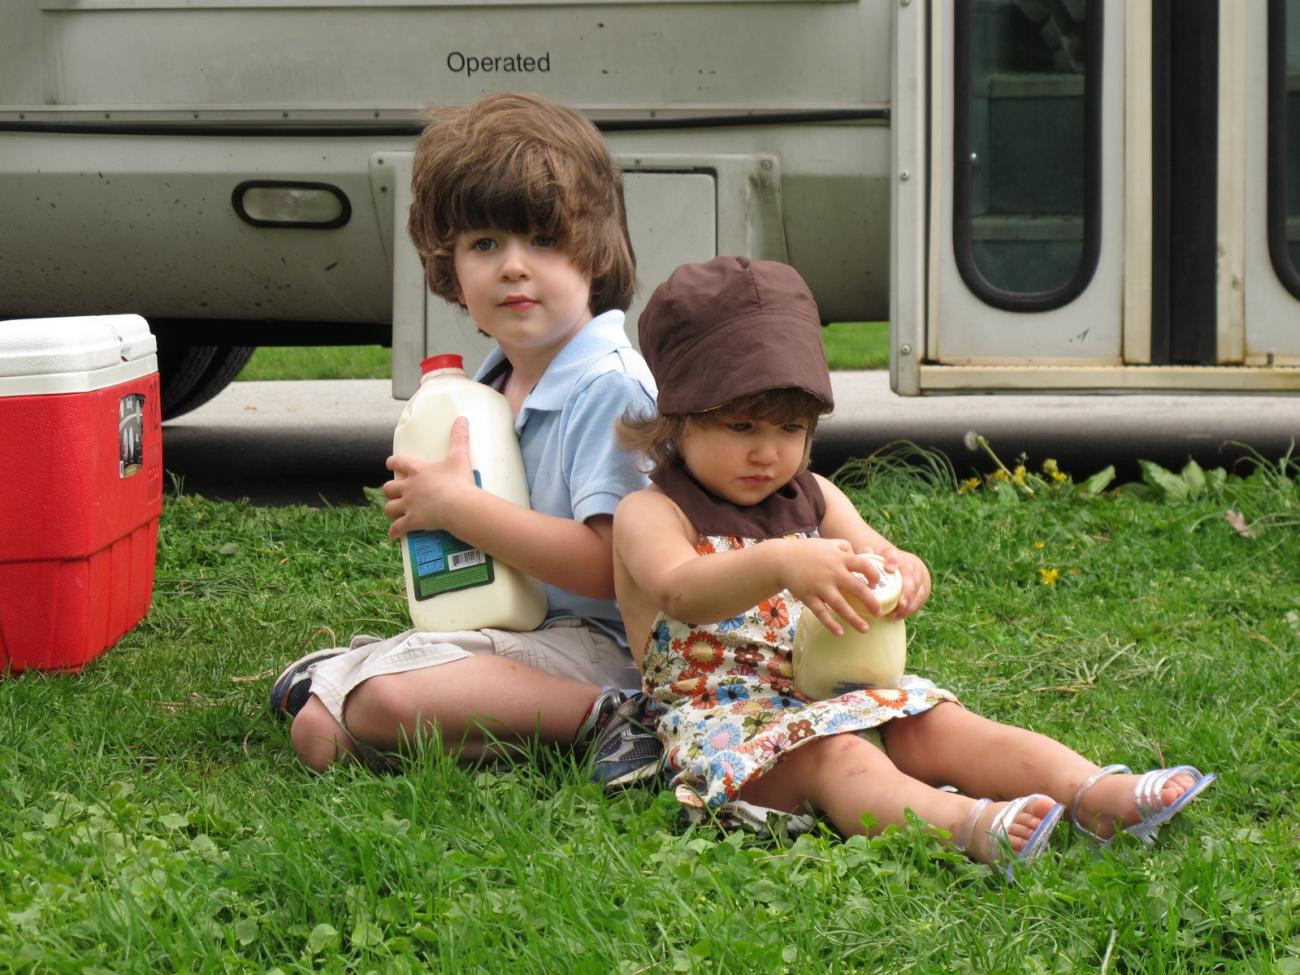 Children-at-Pickup-Location.jpg